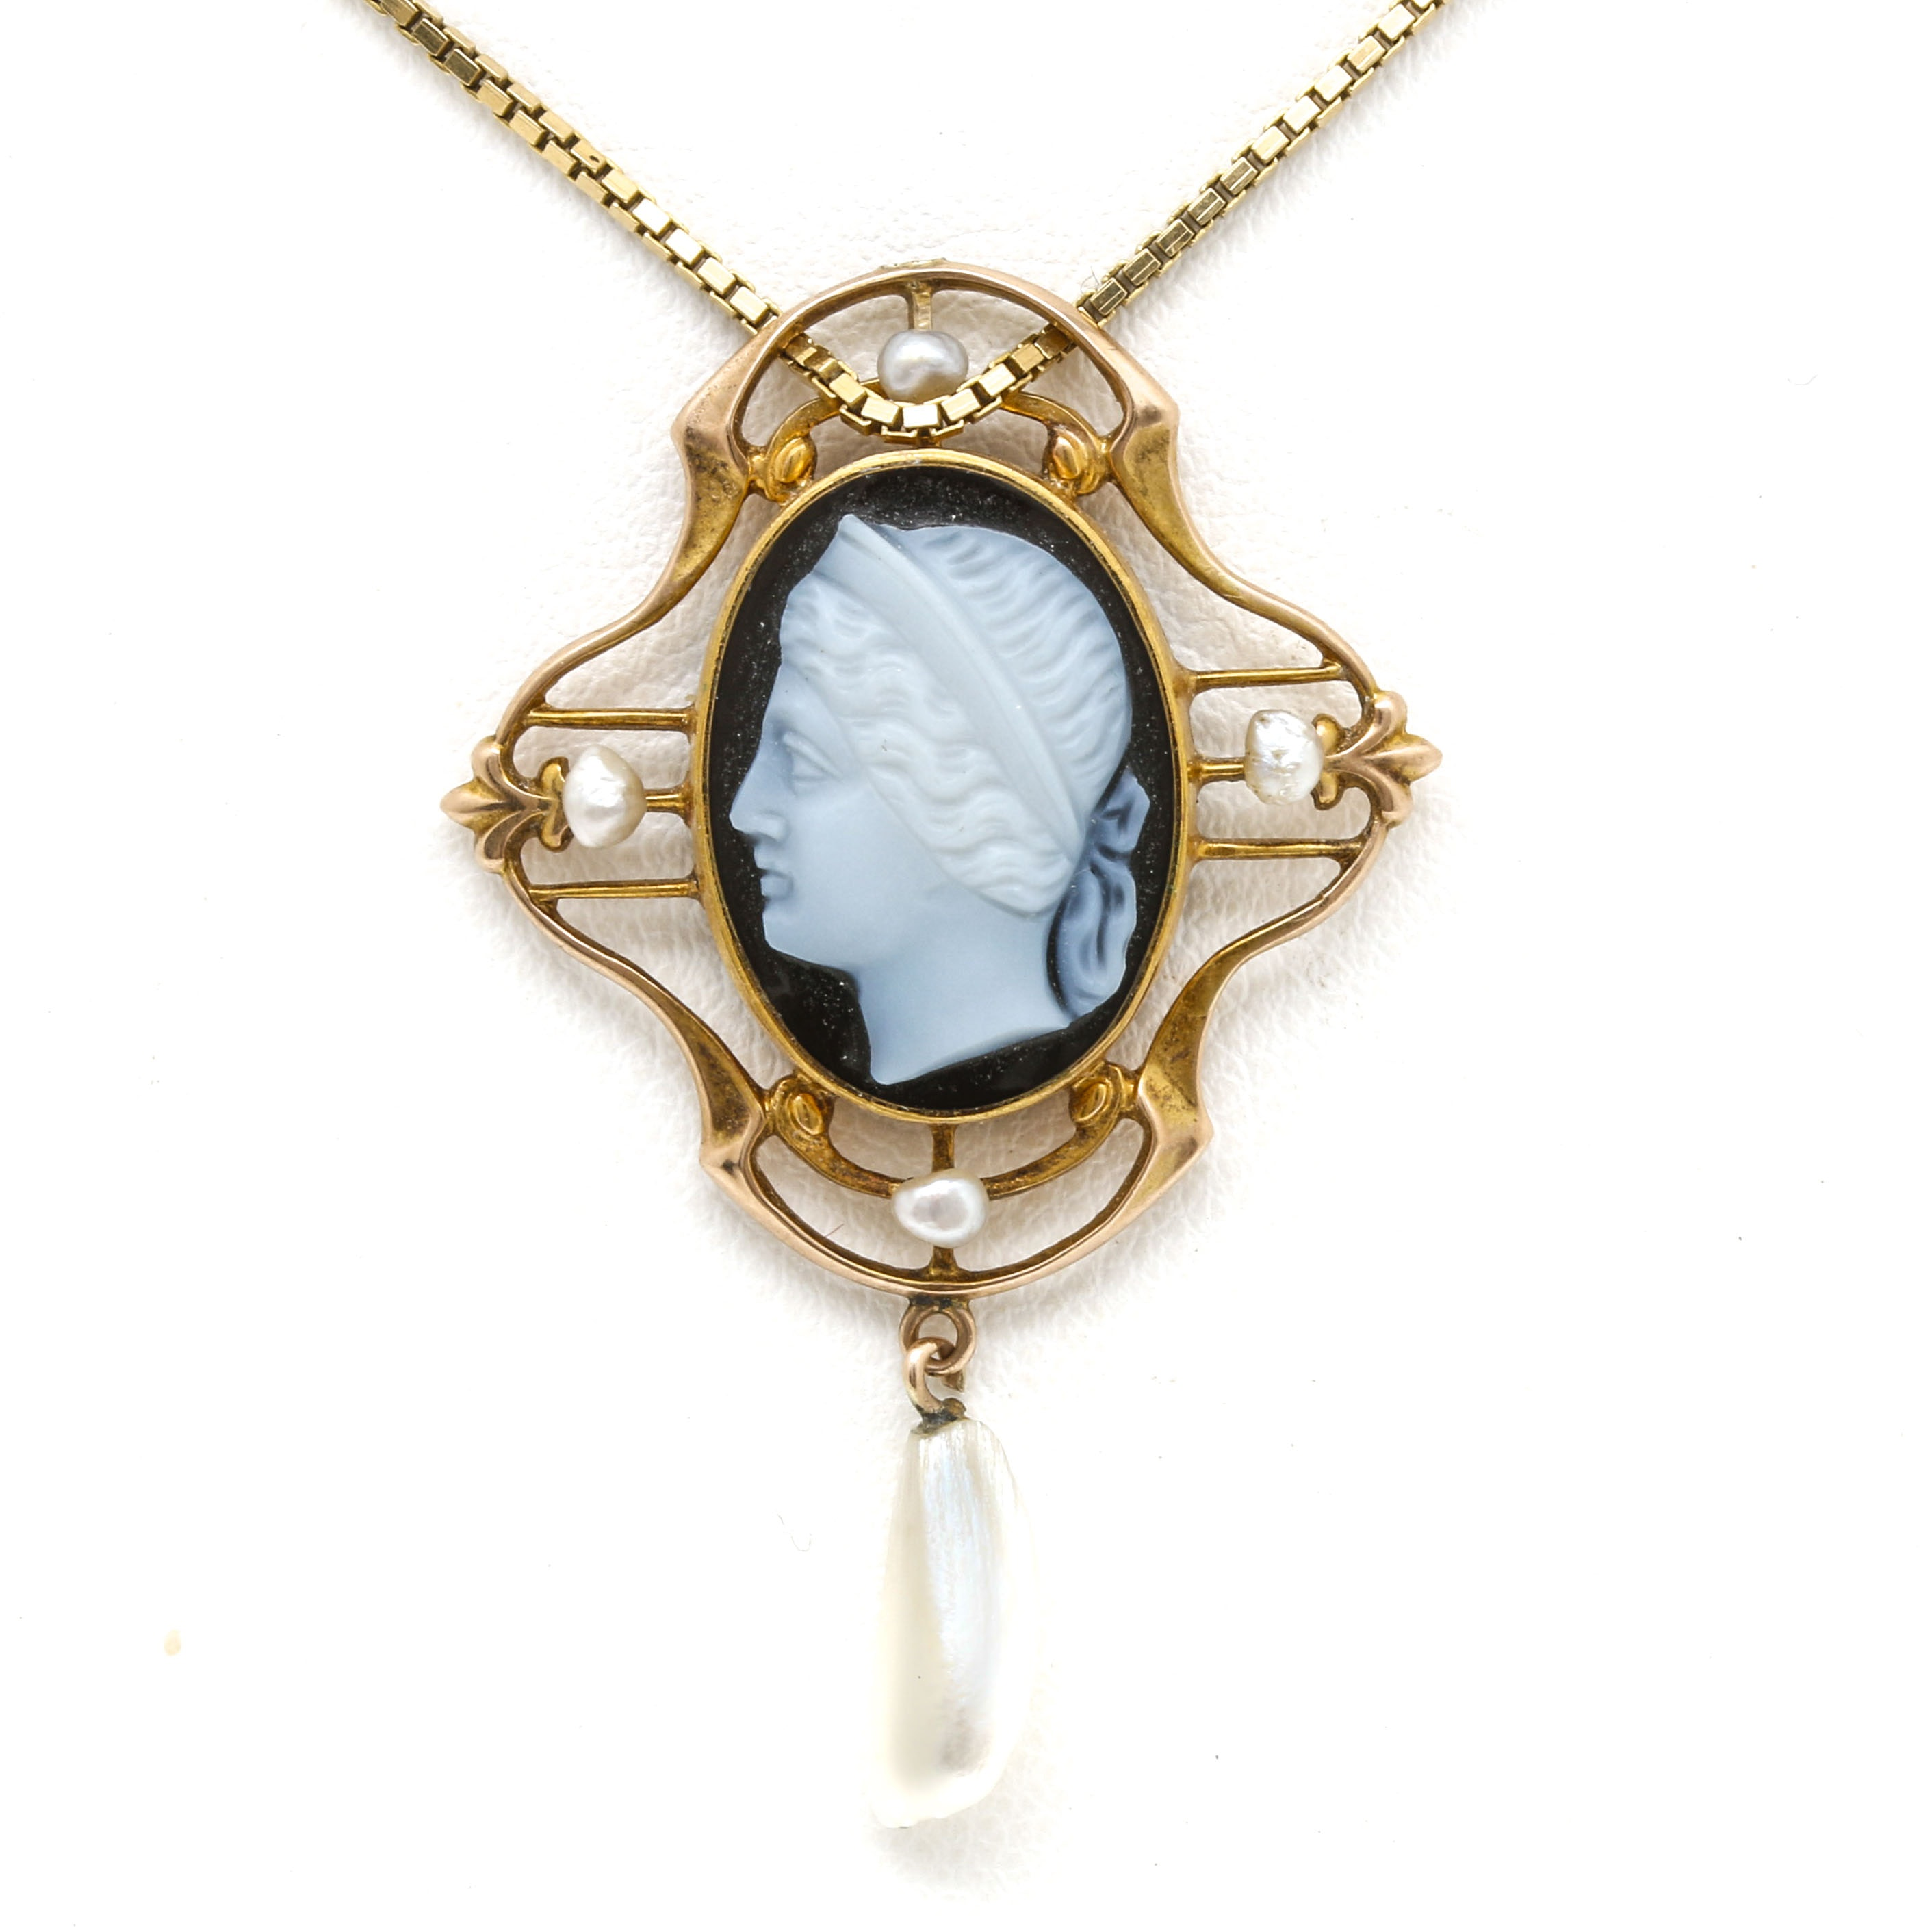 10K and 14K Yellow Gold Onyx Cameo and Pearl Pendant Necklace